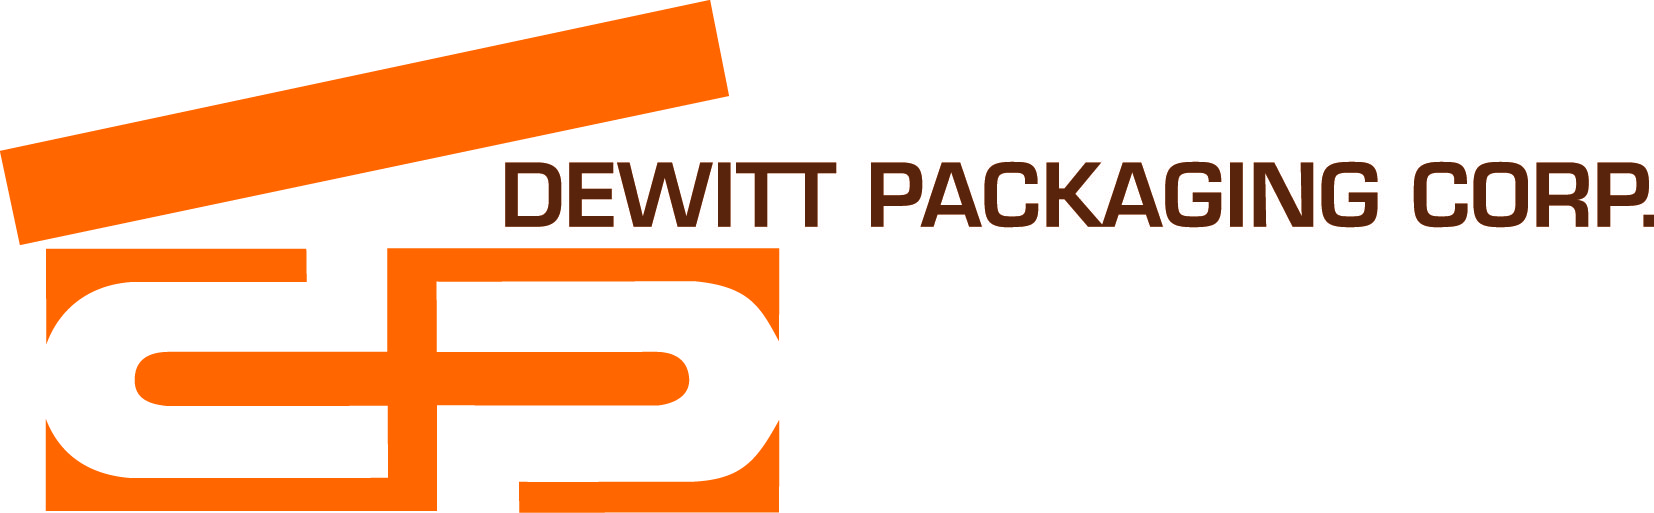 DeWitt Packaging Corp